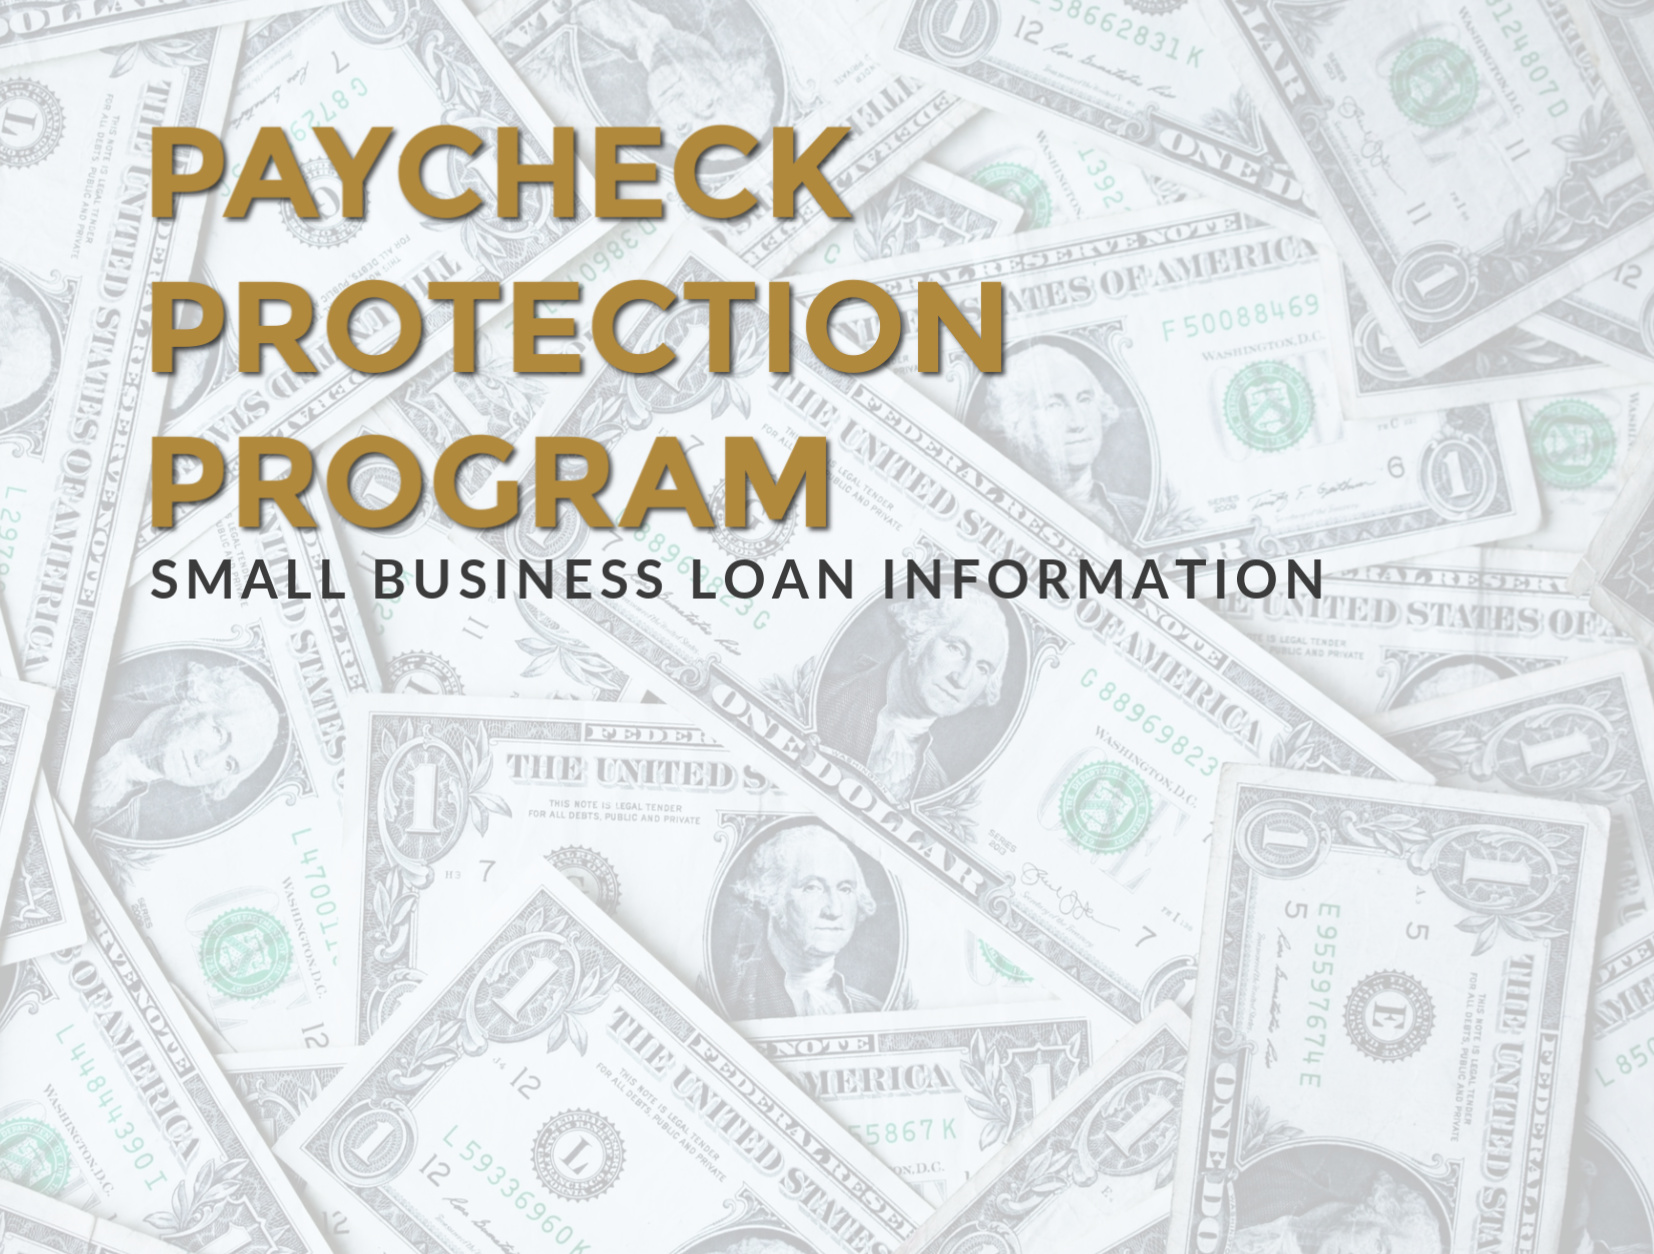 Economic Security For Small Biz Owners and the Self-Employed